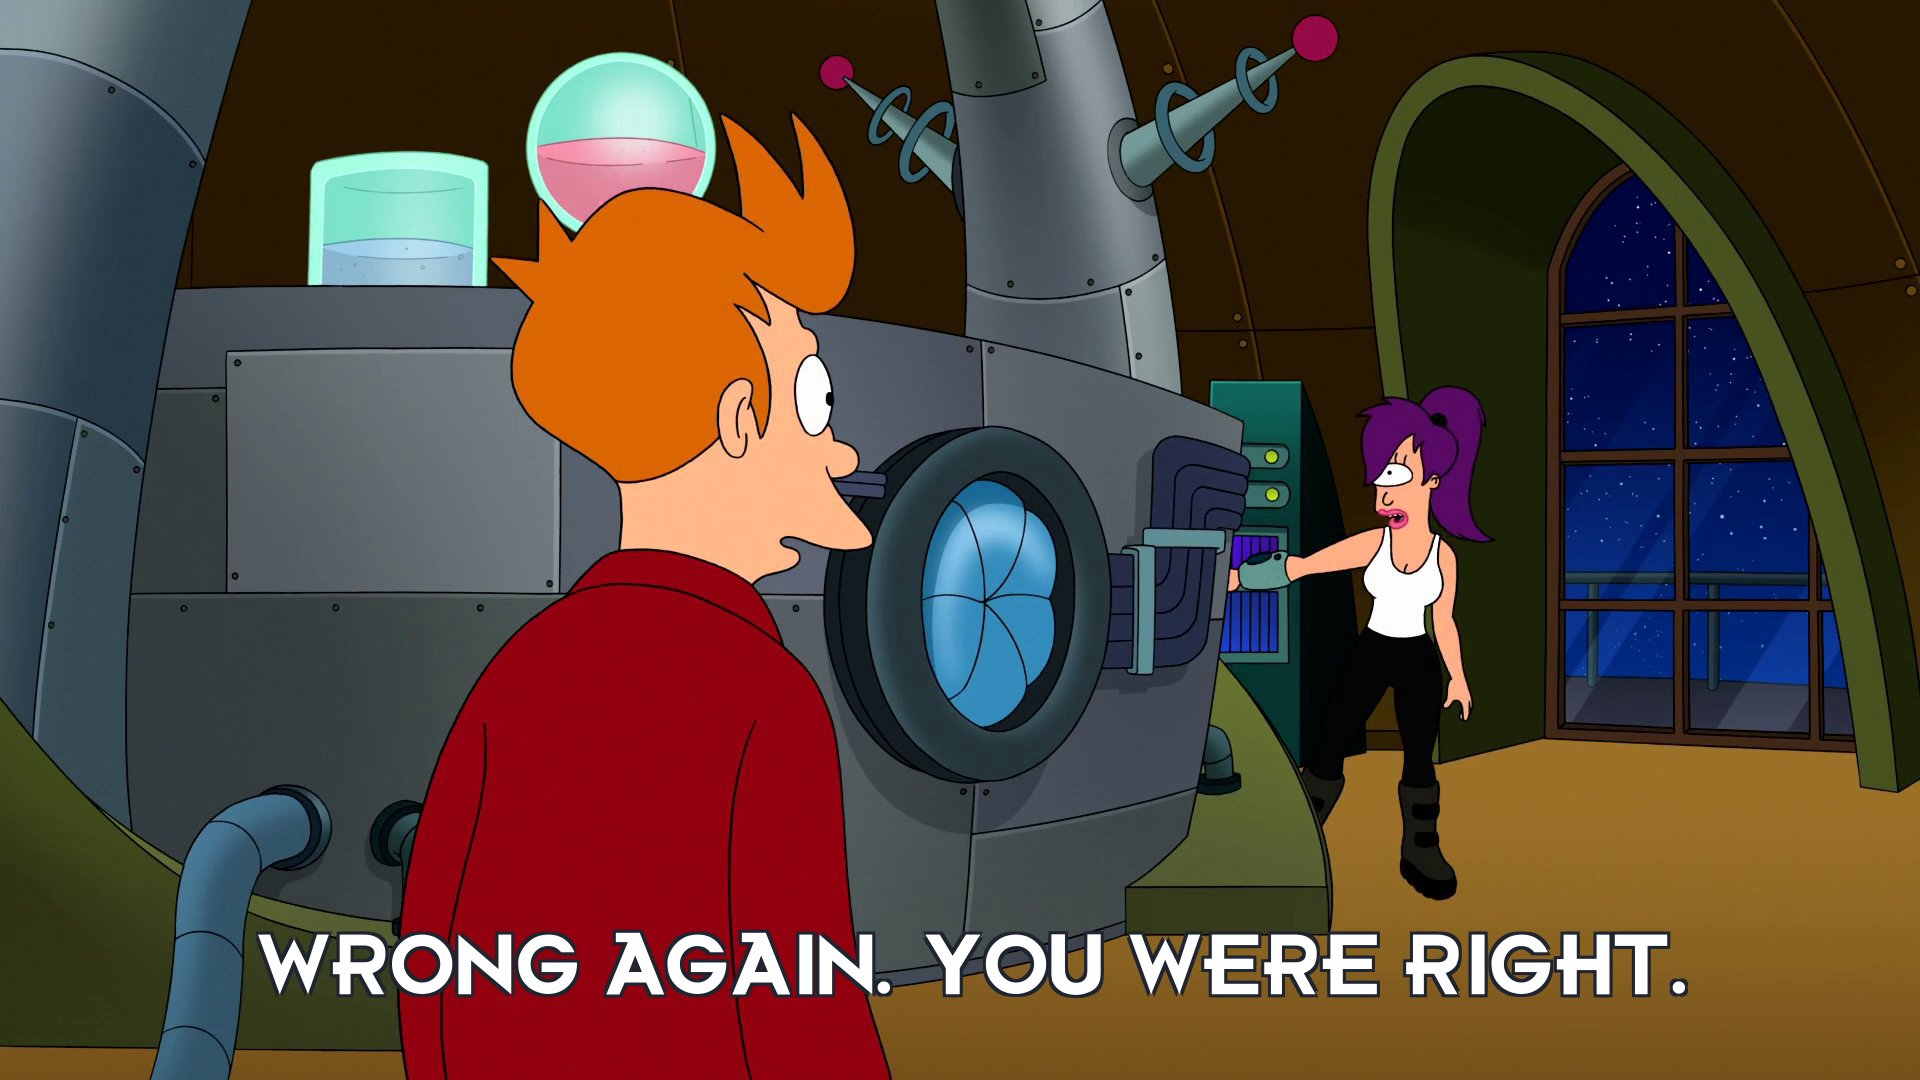 Turanga Leela: Wrong again. You were right.